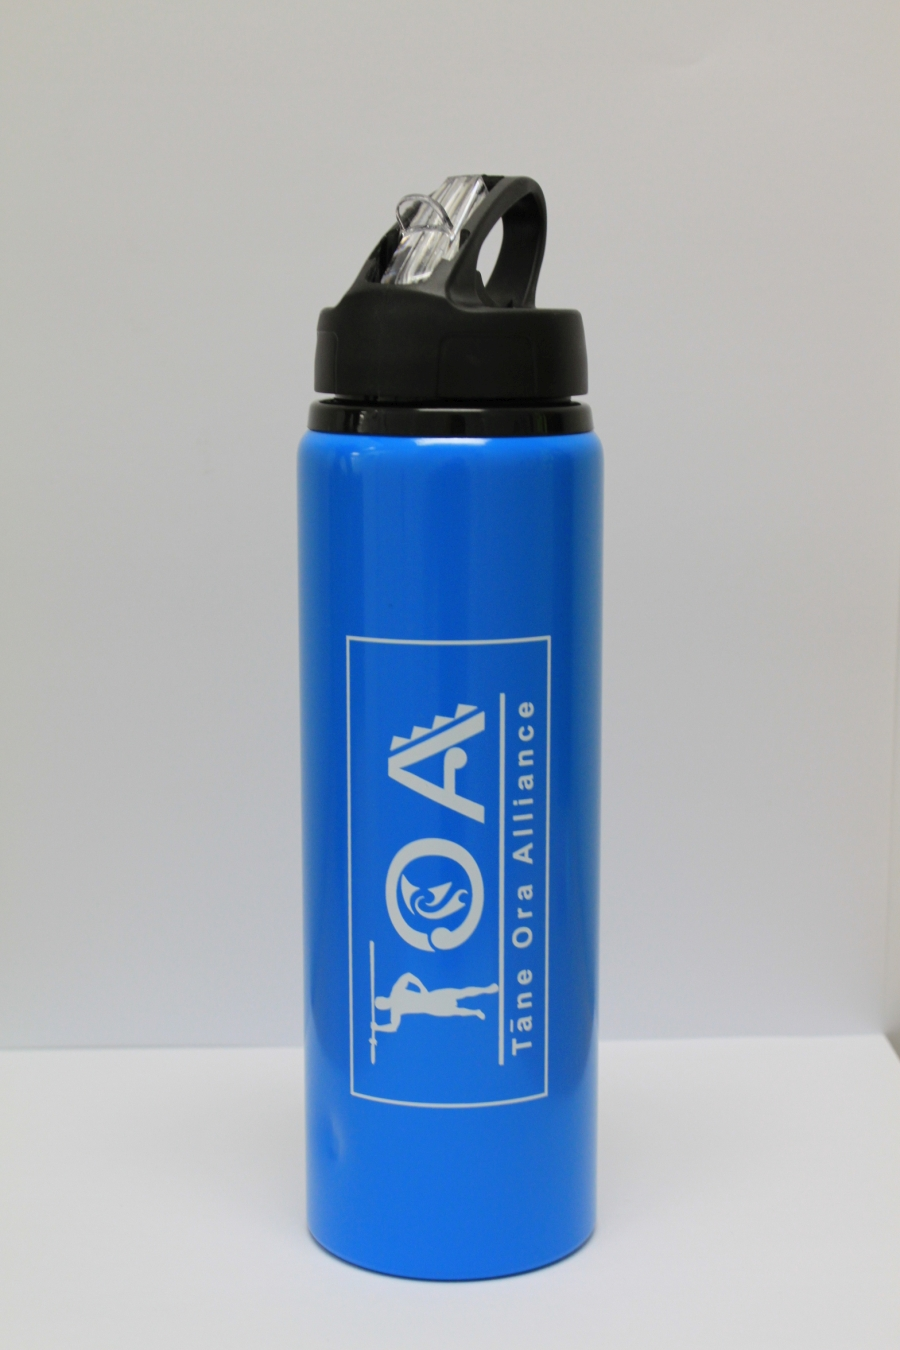 TOA Bottle $15